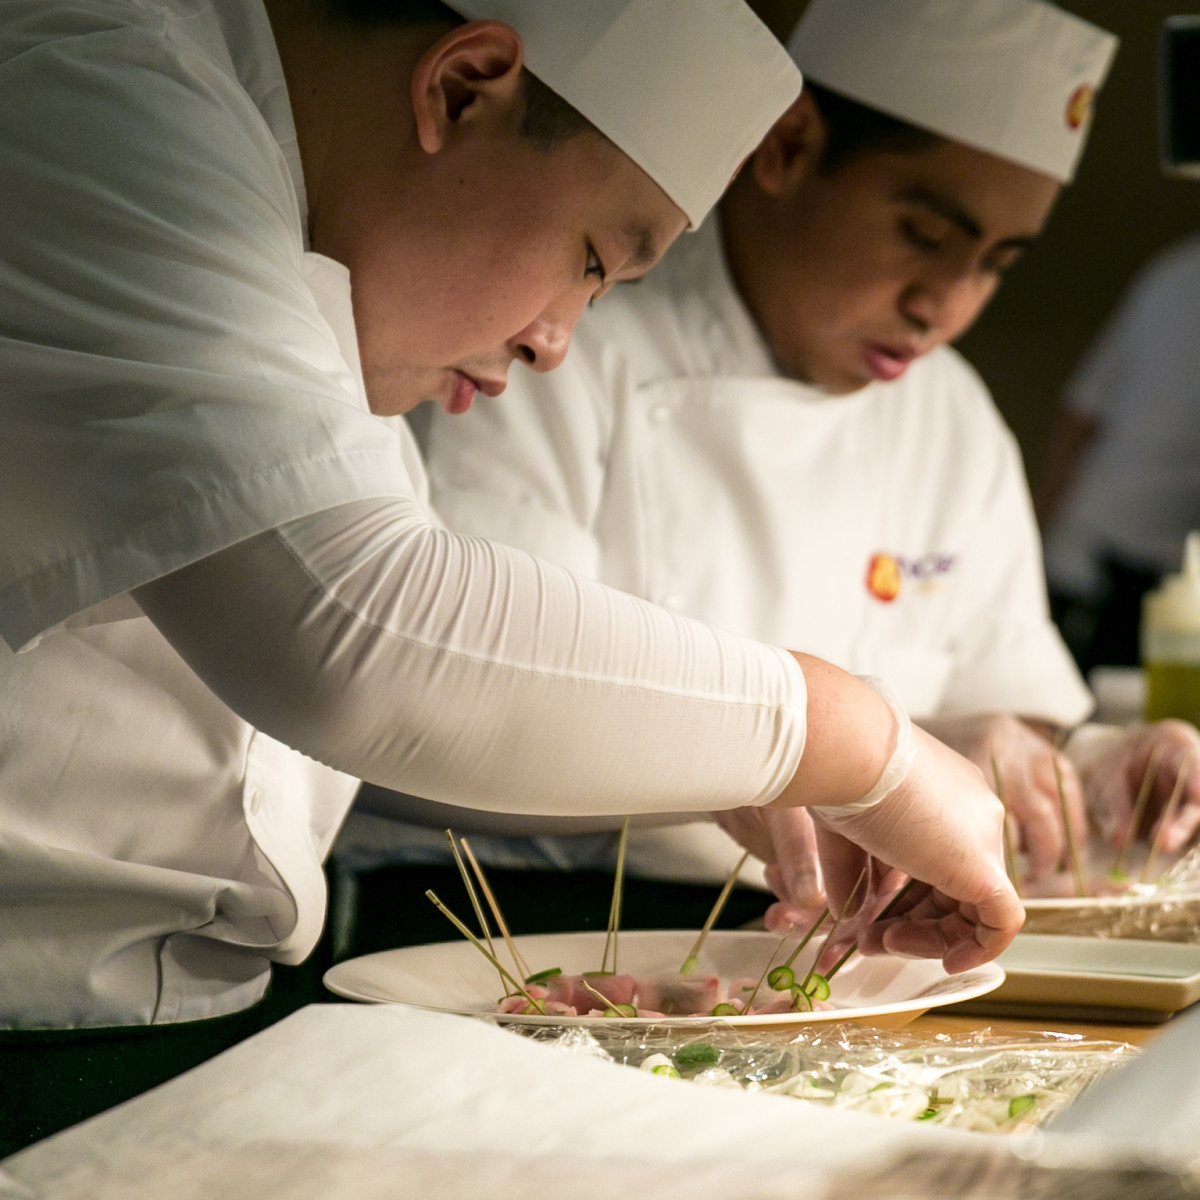 Nobu opening party chefs plating